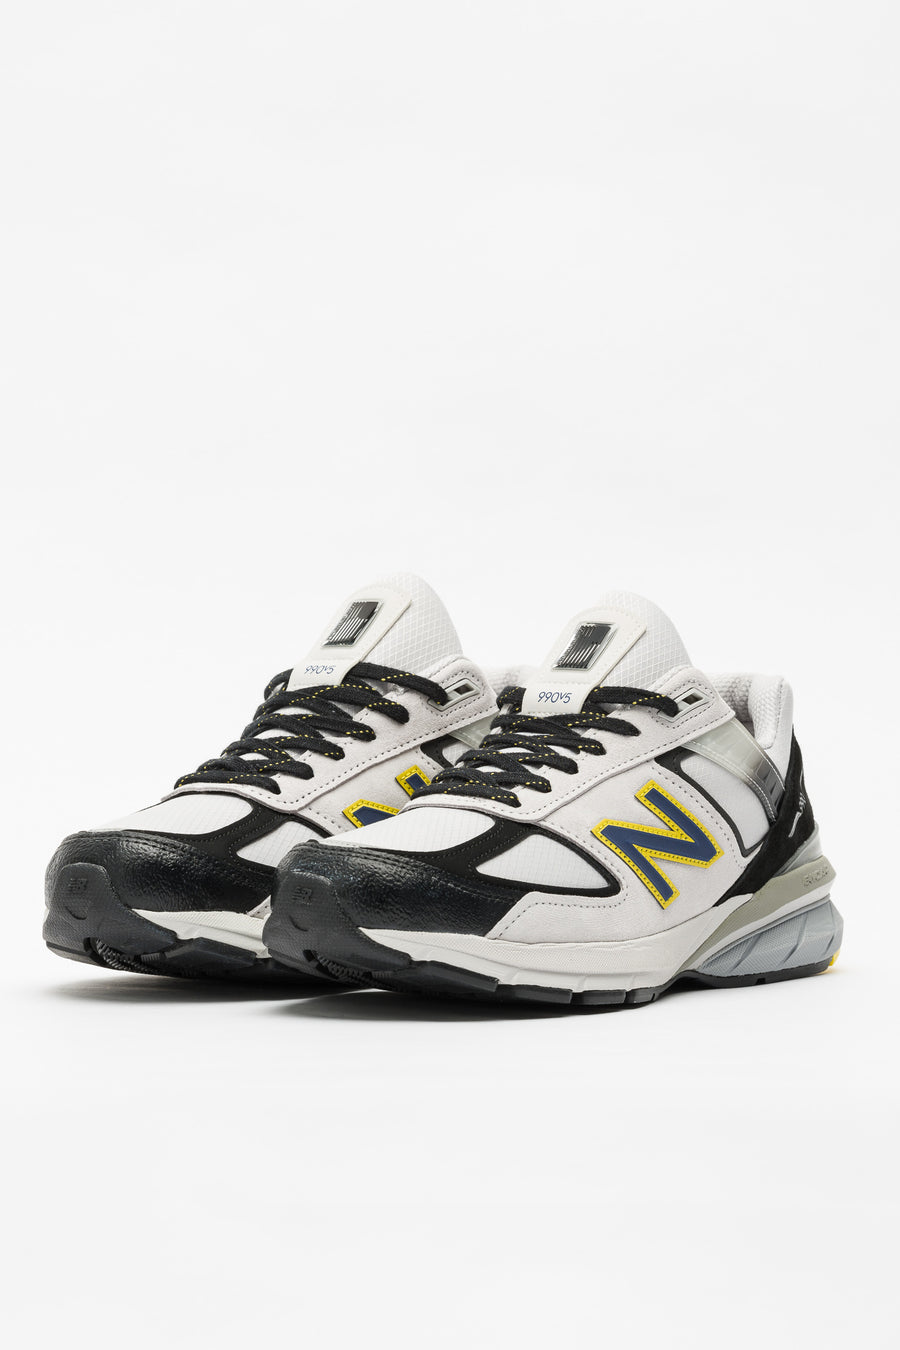 New Balance M990SB5 in Silver/Black - Notre